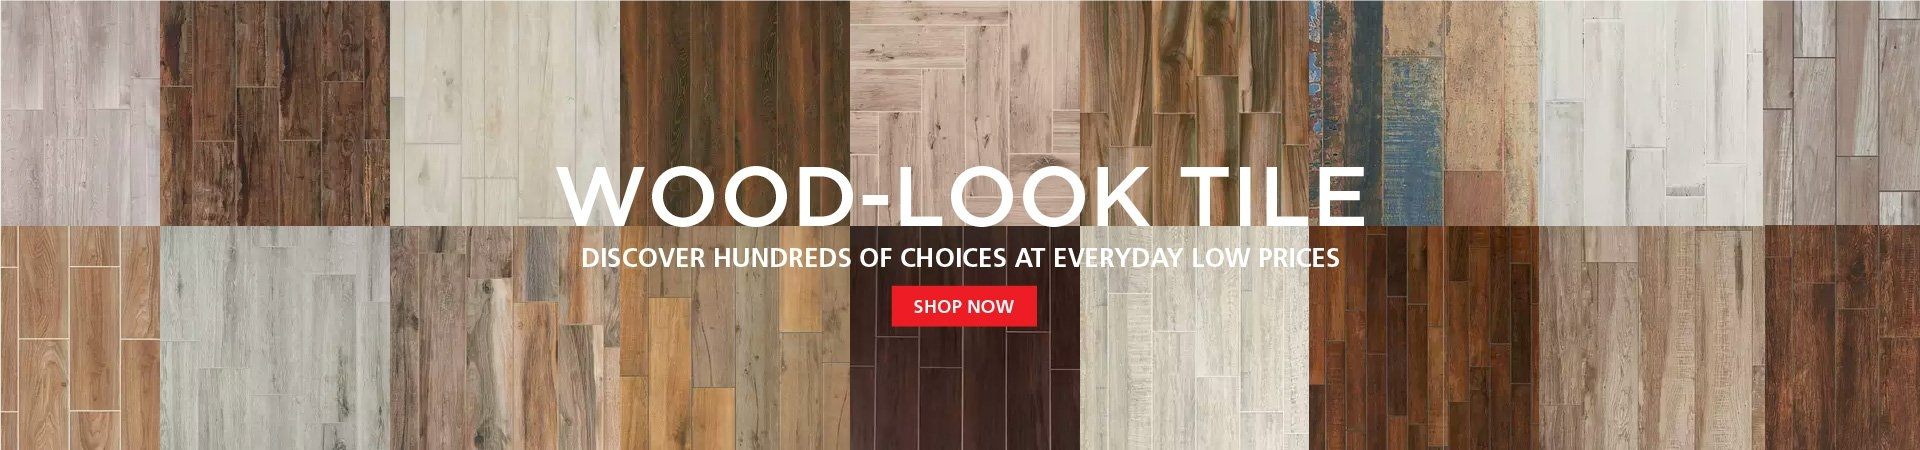 Wood Look Tile hide